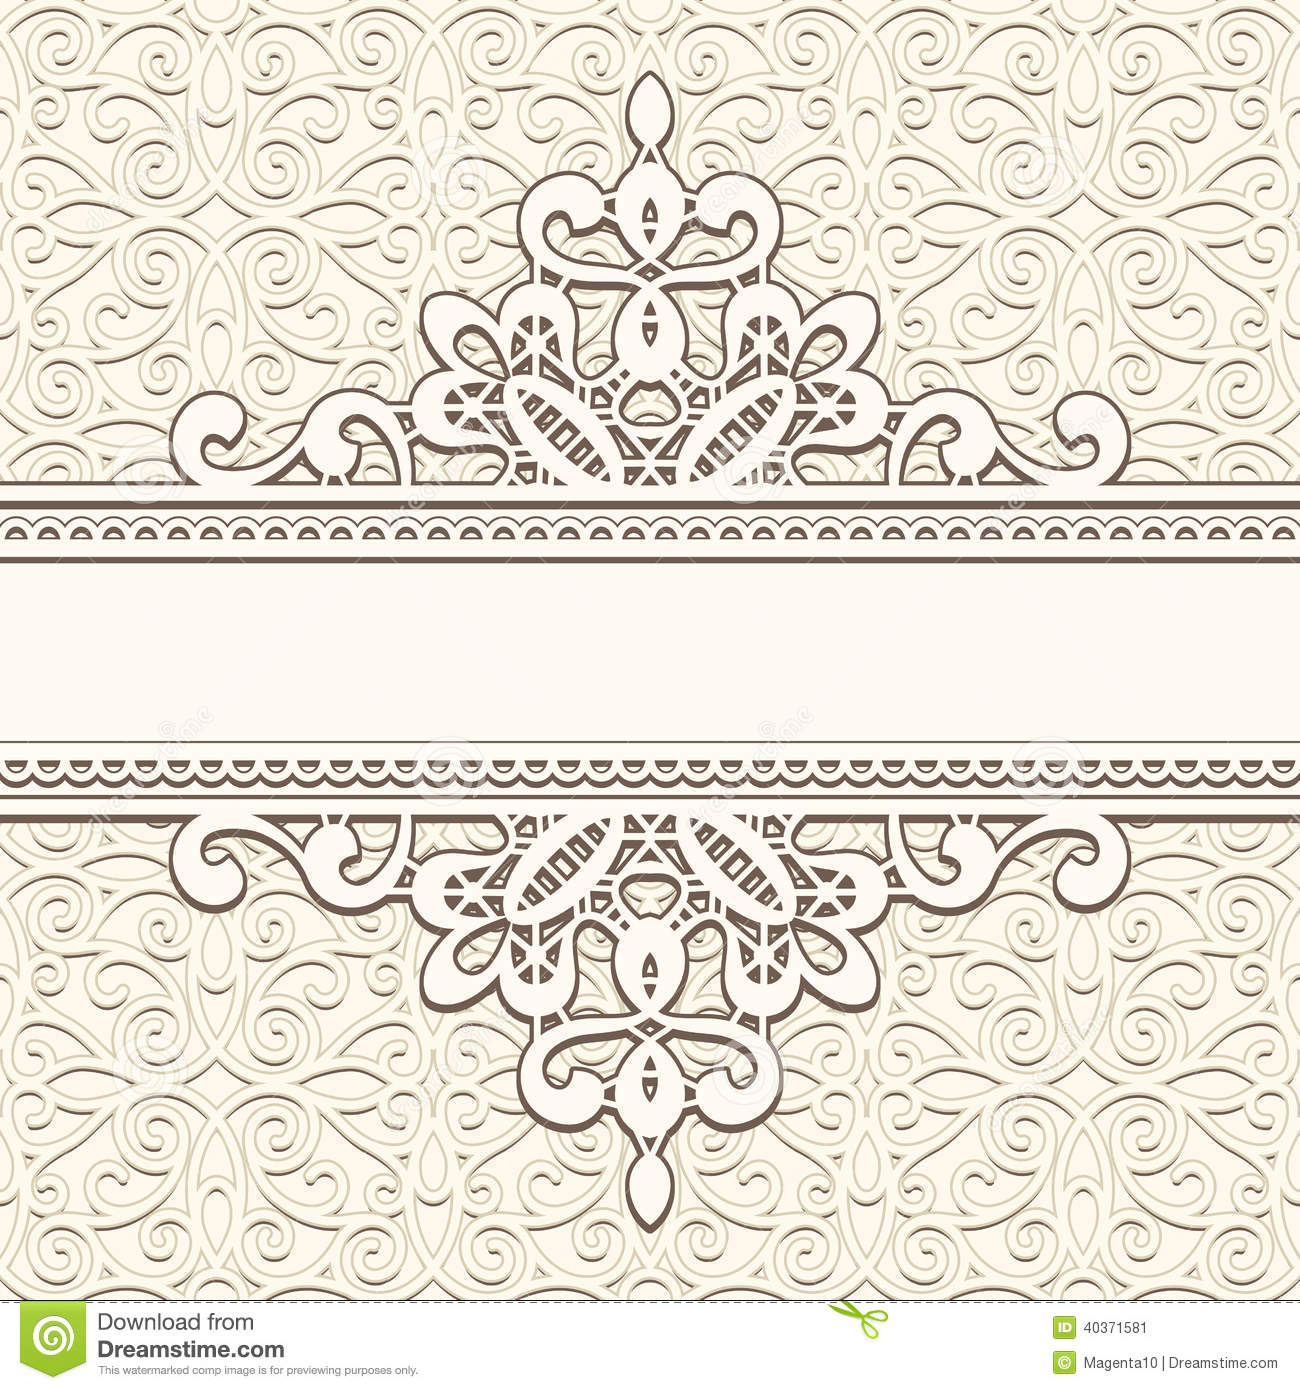 Vintage lace frame stock vector. Illustration of background.